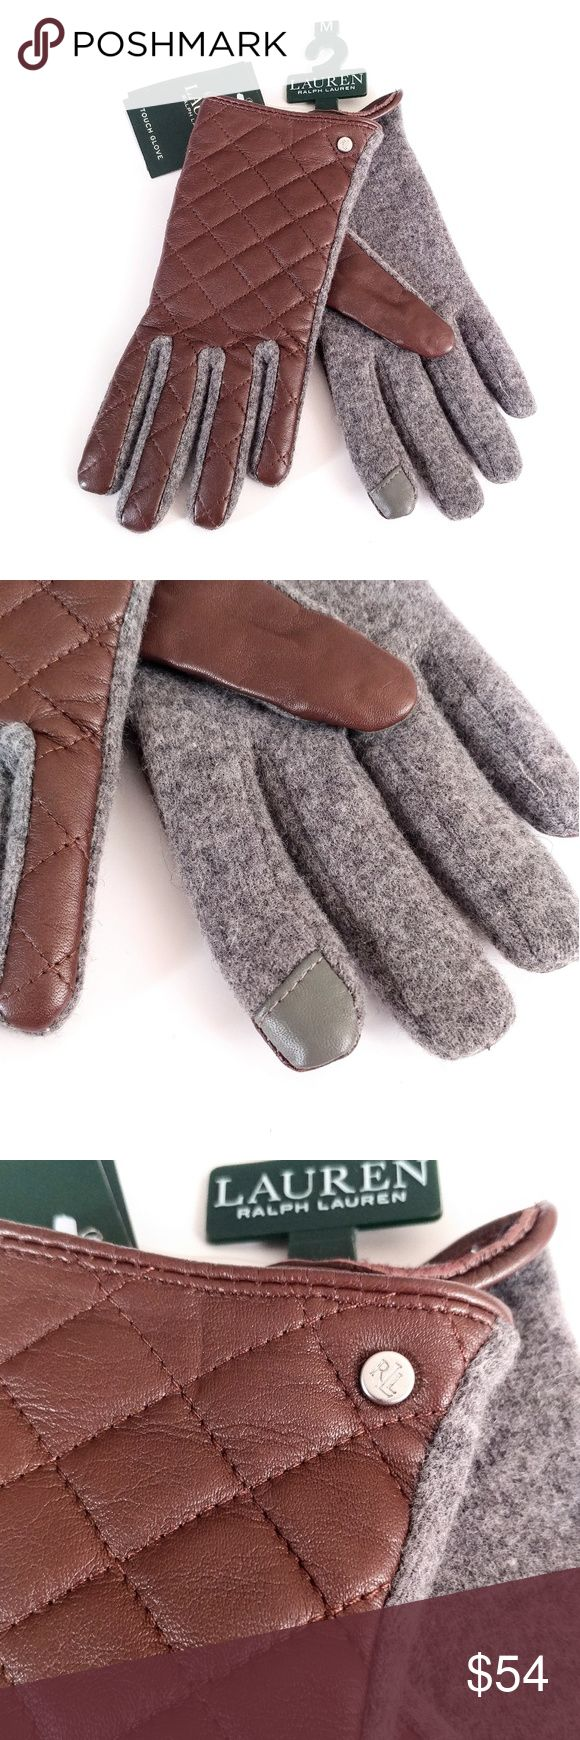 Lauren Ralph Lauren Brown Quilted Touch Gloves Front: 100% Sheep leather. Back: 80% Wool / 20% Nylon. Hardware logo. Touch screen technology allows you to use your touch screen devices without removing your gloves. Last picture of small defect on left glove. It is where the tag goes. Lauren Ralph Lauren Accessories Gloves & Mittens